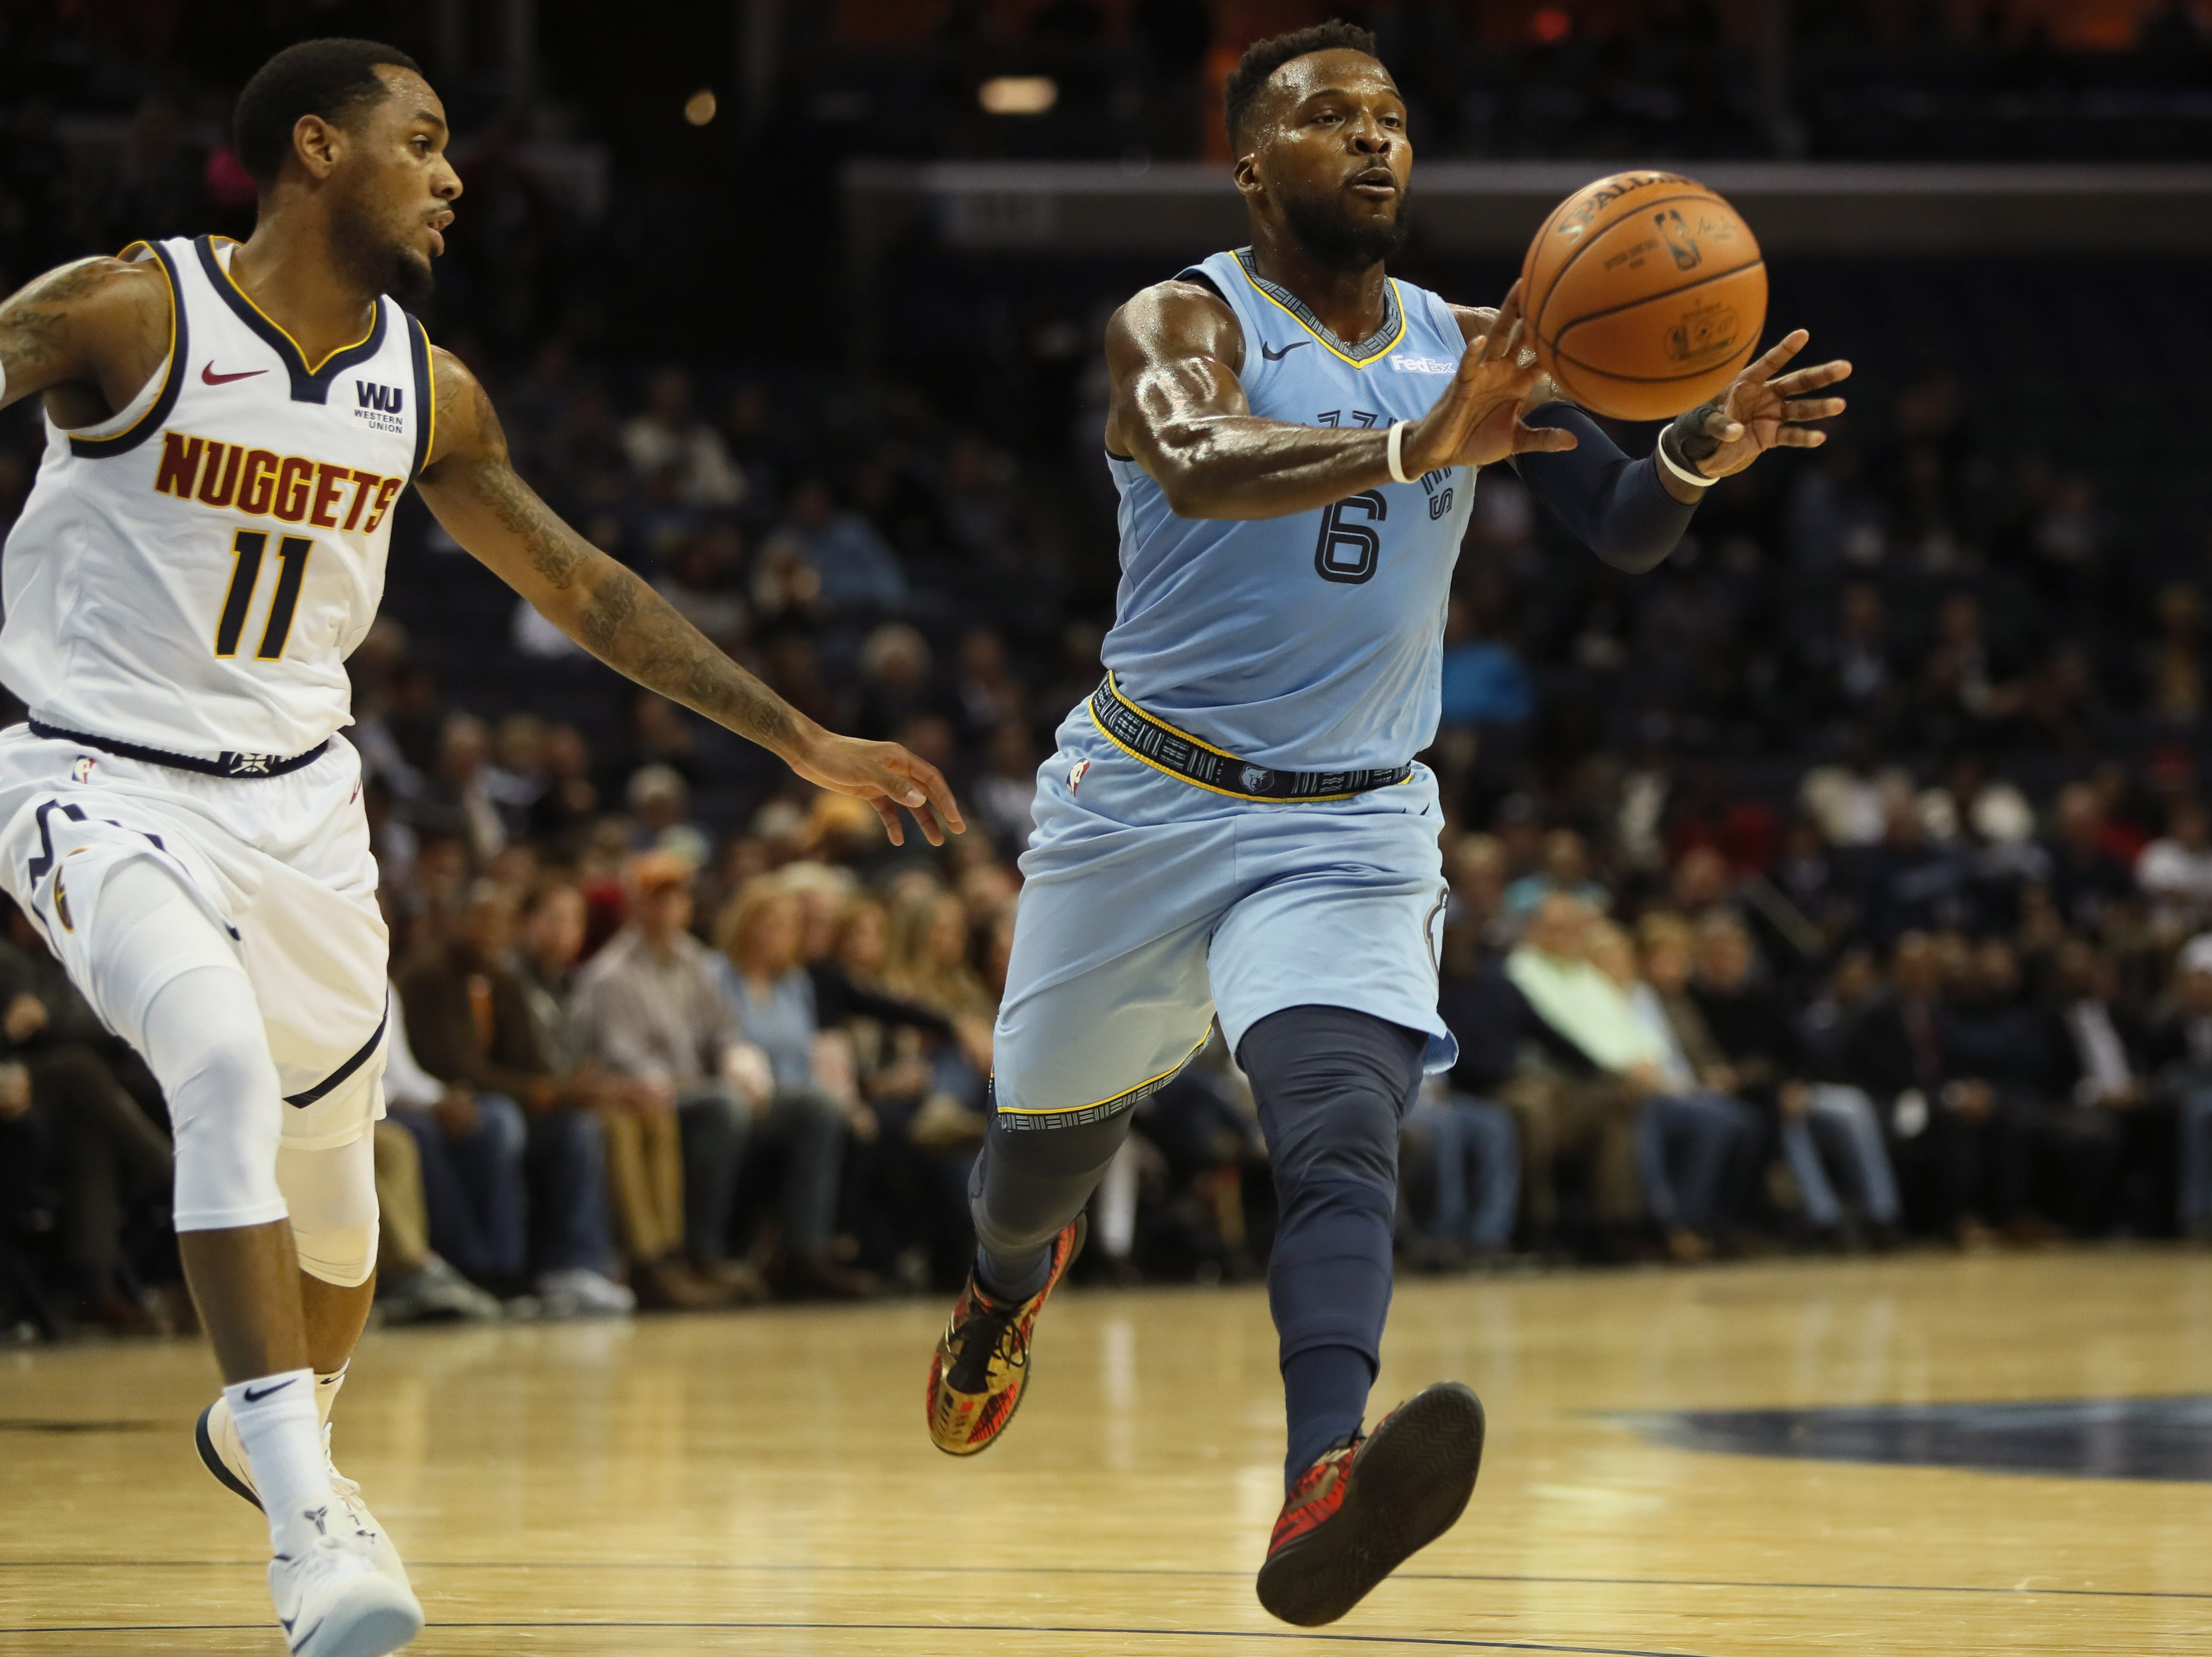 Memphis Grizzlies guard Shelvin Mack passes the ball against the Denver Nuggets during their game at the FedExForum on Wednesday, November 7, 2018.